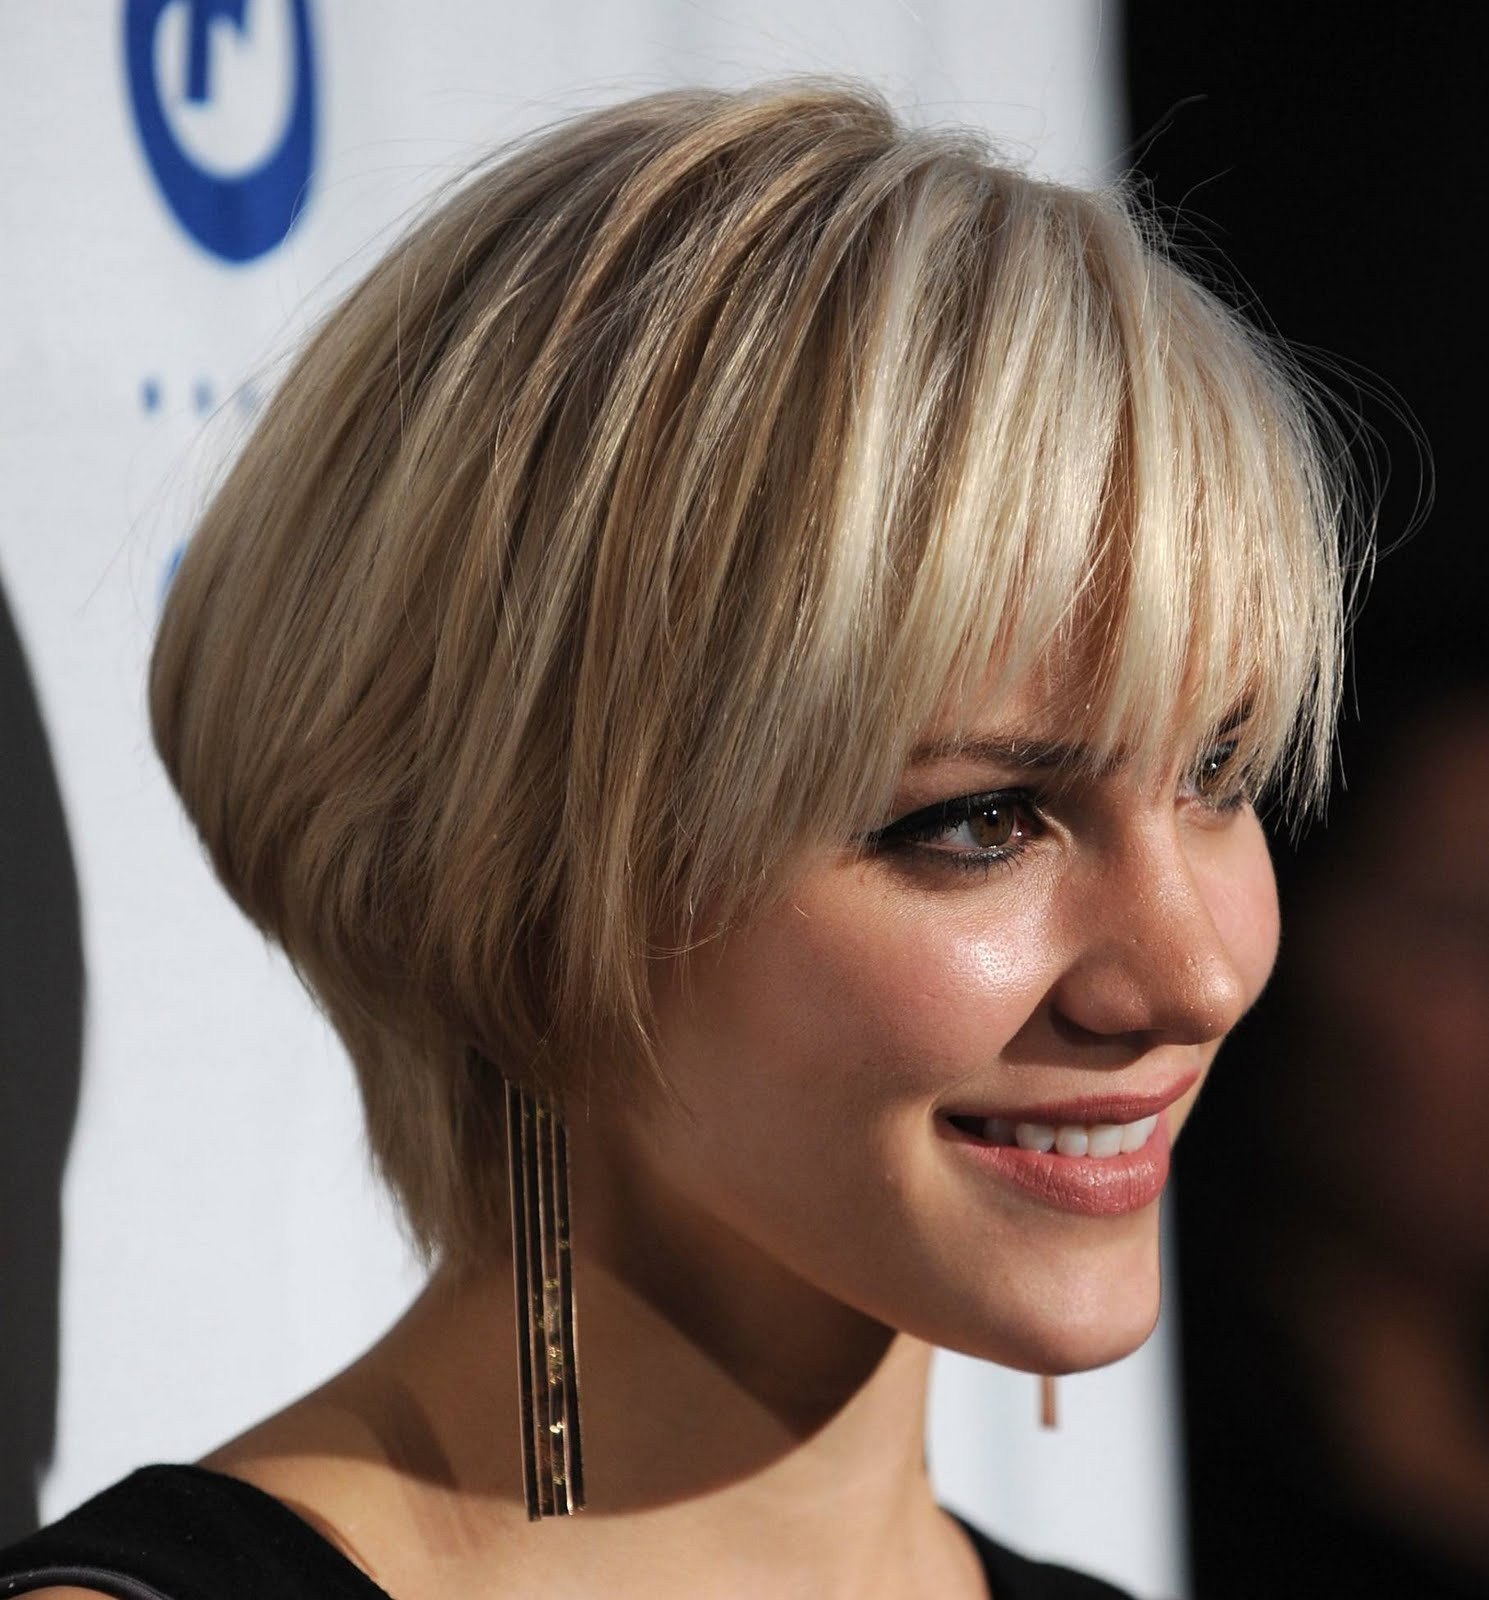 Best ideas about Straight Bob Hairstyles . Save or Pin Short Blonde Straight Bob Hairstyles for prom 2011 Trends Now.